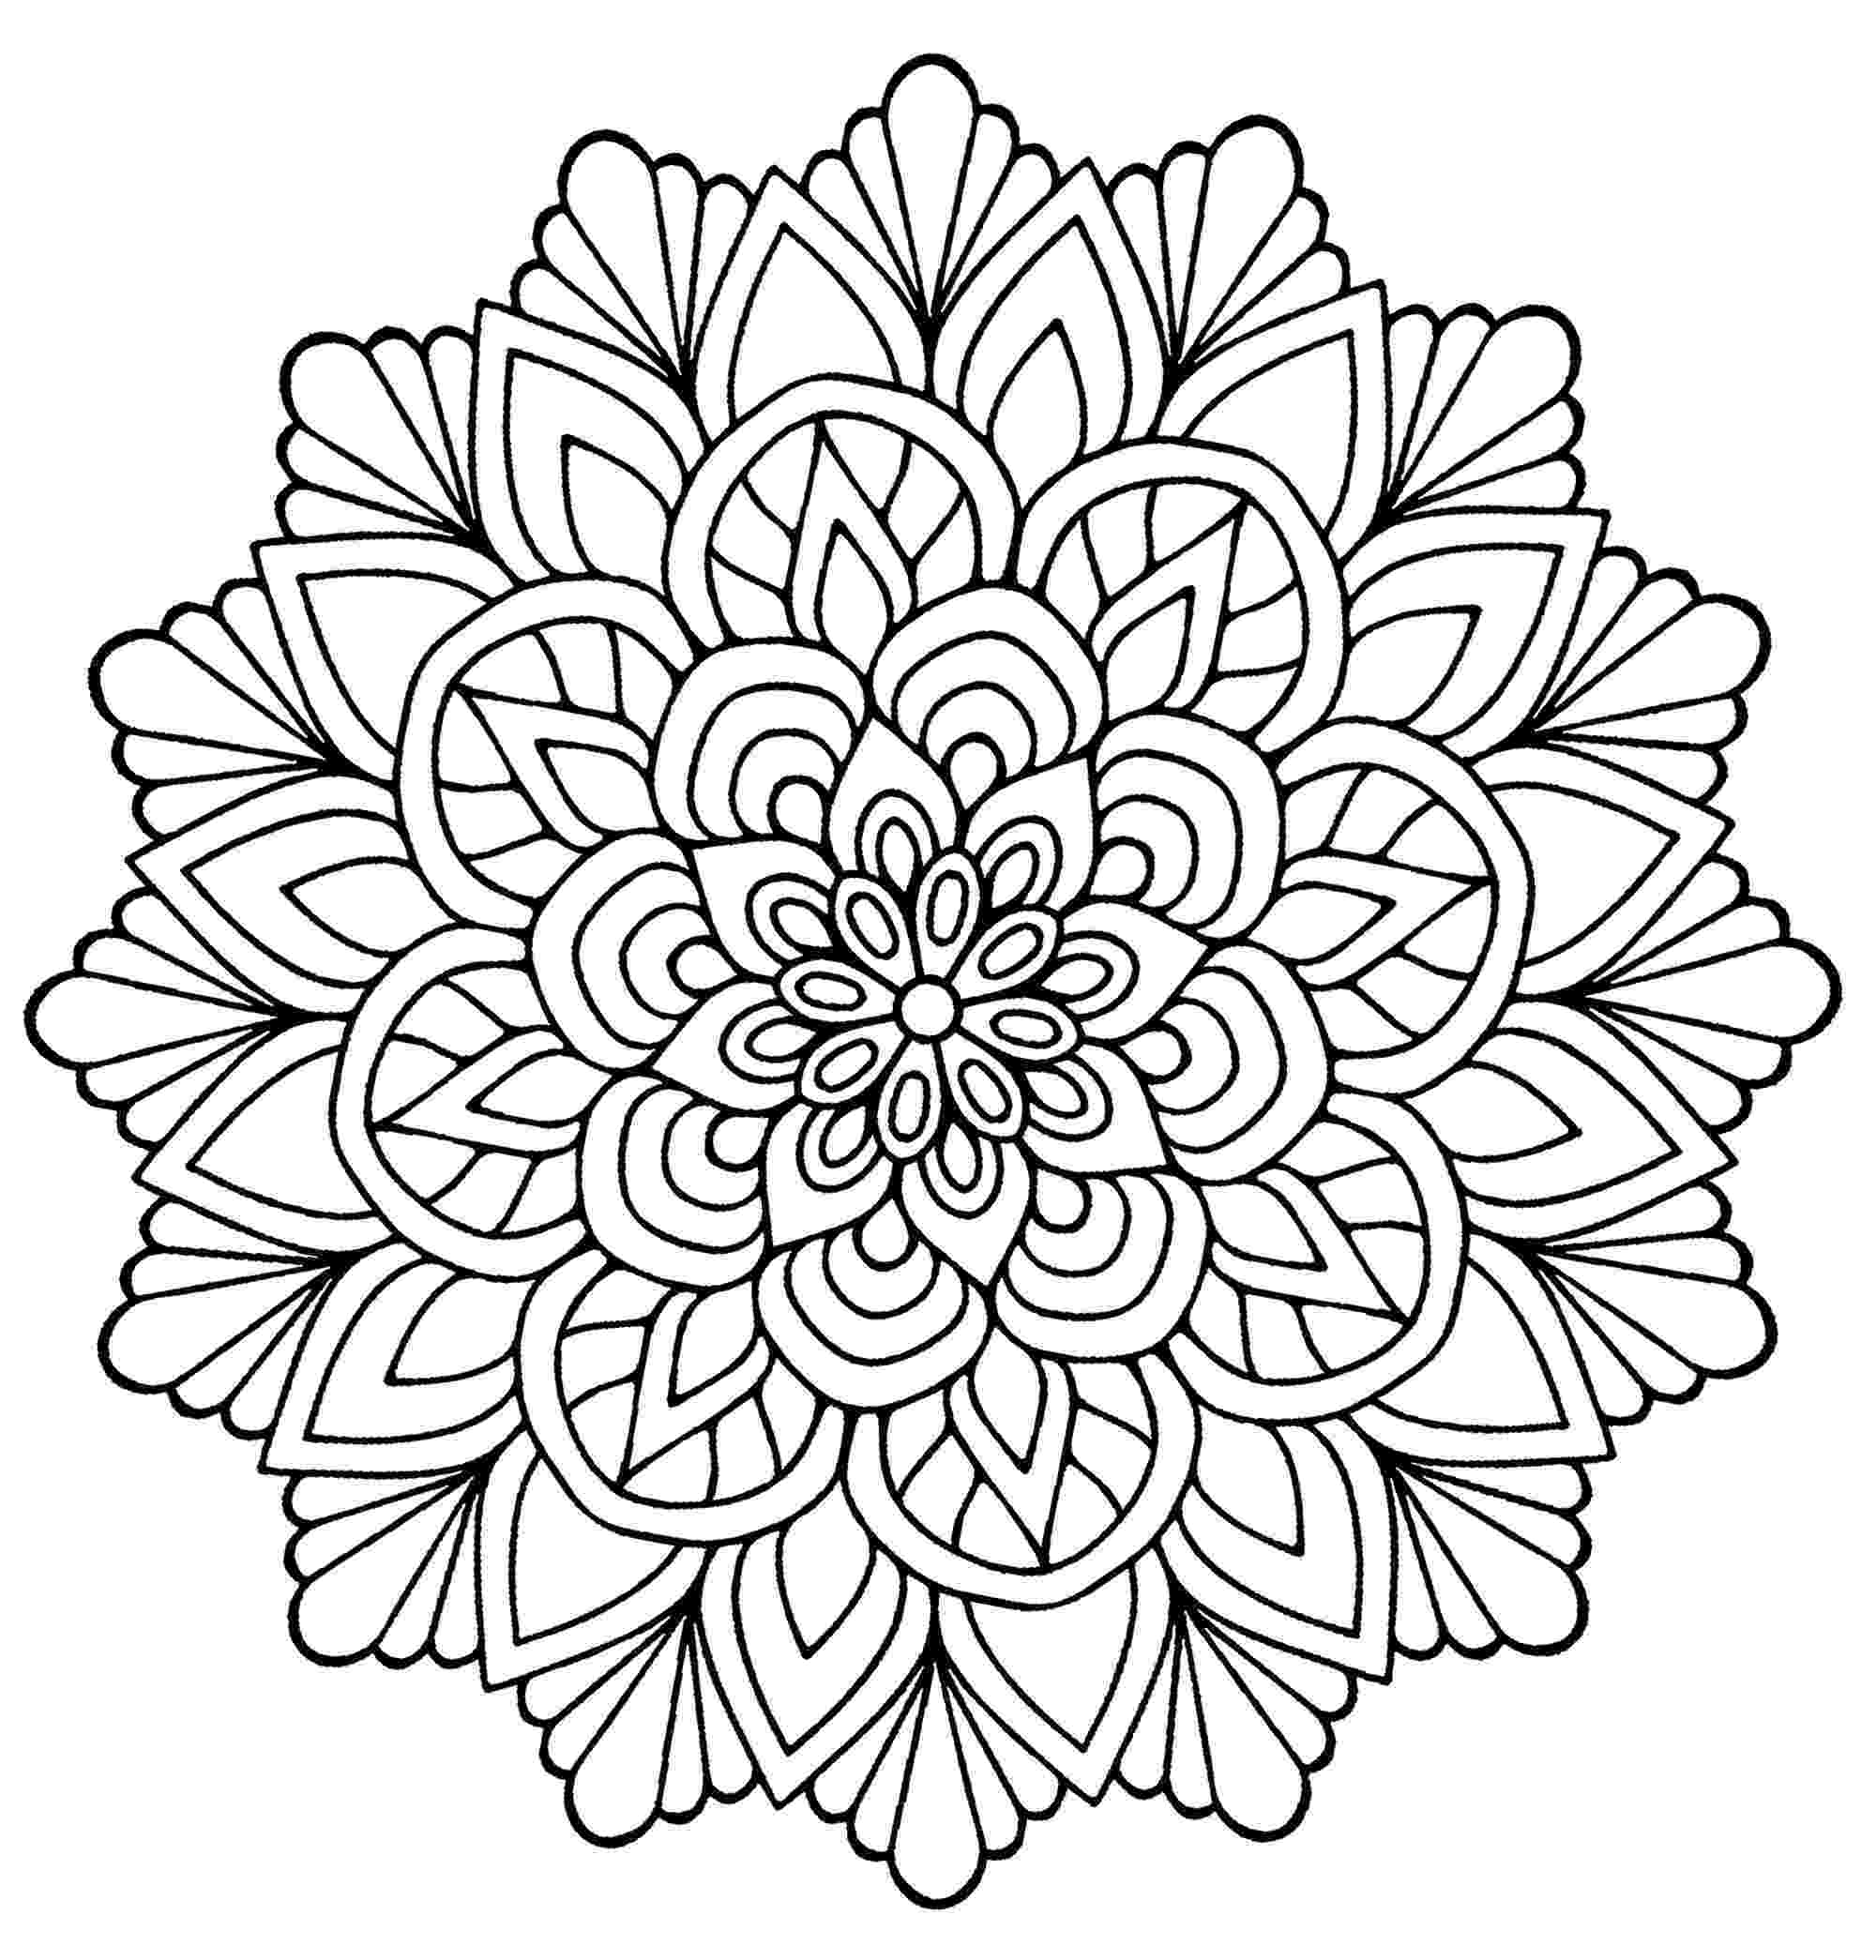 coloring pages for adults mandala animal mandala coloring pages best coloring pages for kids pages coloring adults mandala for